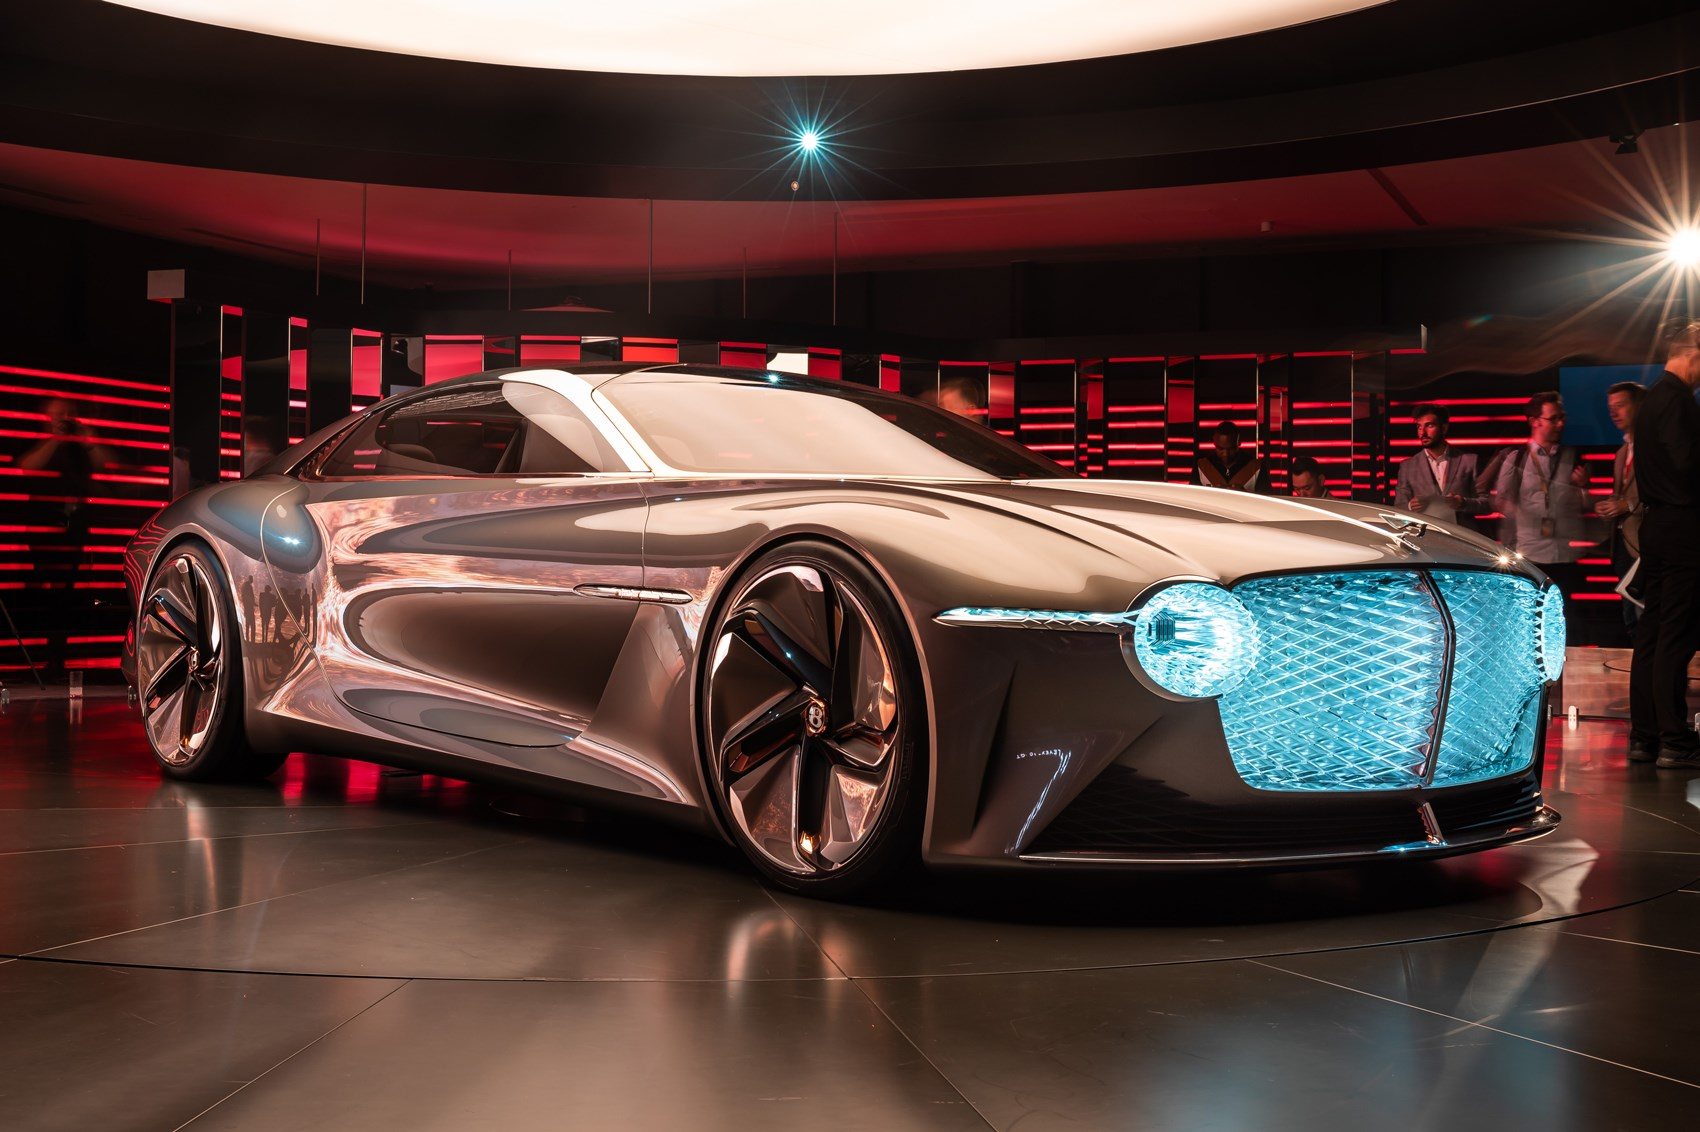 Luxury Car Vision >> Luxury Car Vision Upcoming New Car Release 2020